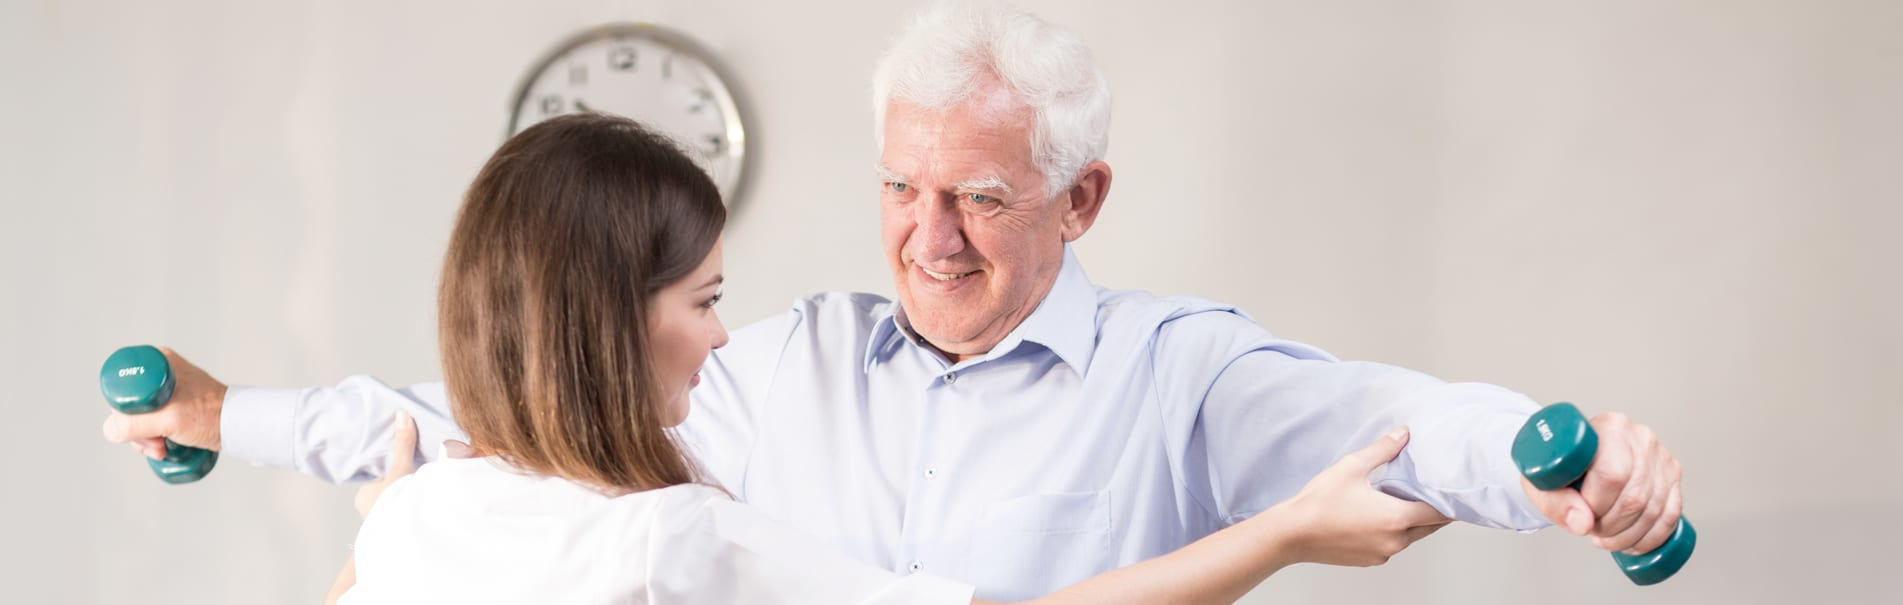 nursing career profile In today's job market, to stand out, you should consider writing a resume profile statement instead of a traditional resume objective statement.